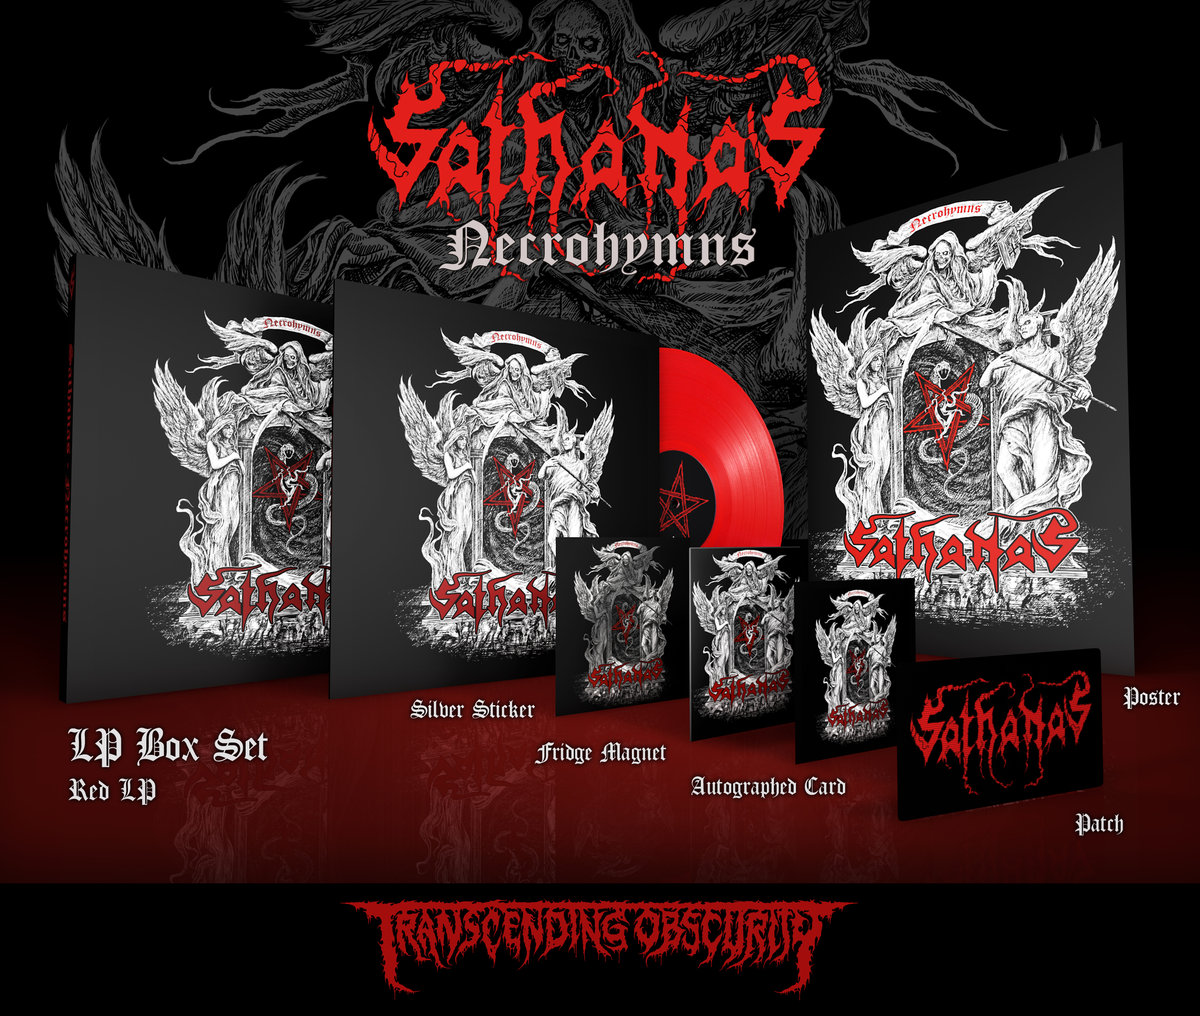 SATHANAS Red LP Box Set (Limited to 25)